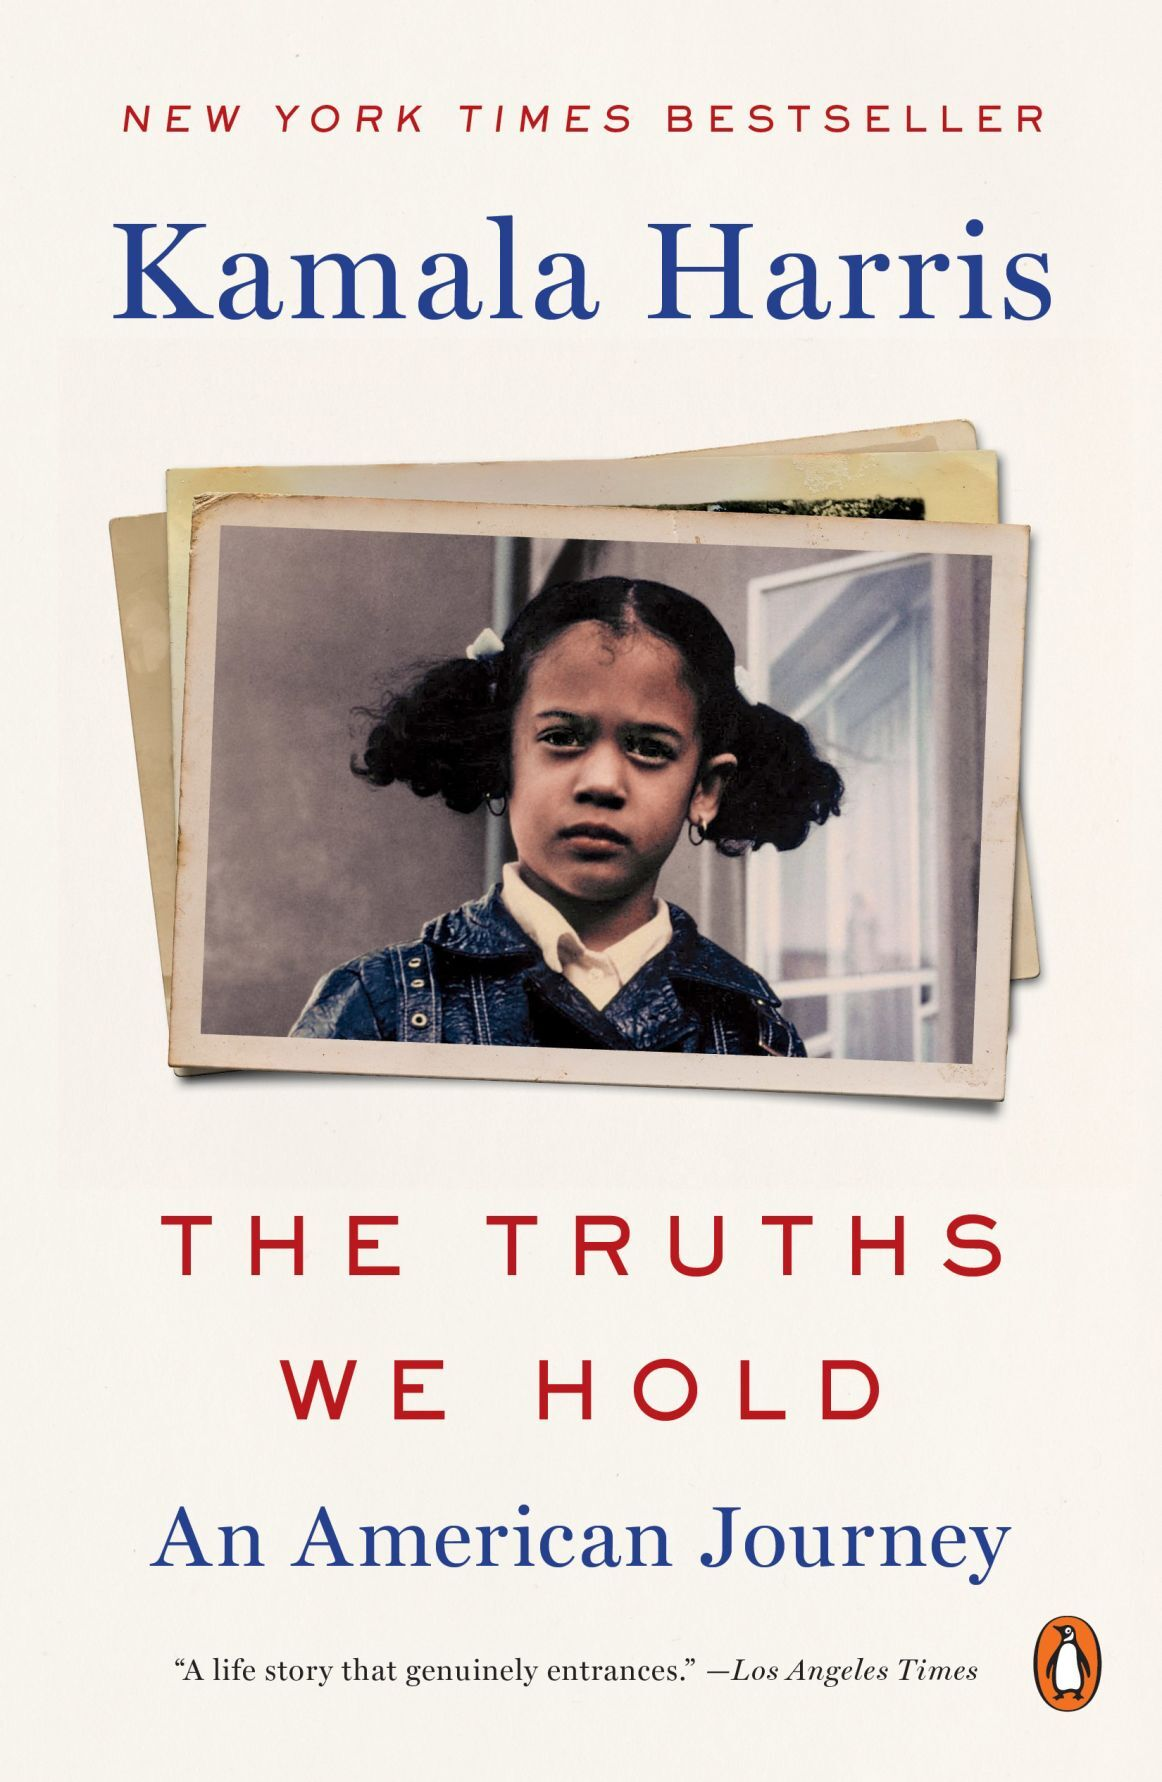 Kamala Harris Book The Truths We Hold Explores Core Truths That Unite Us Lifestyle Phillytrib Com